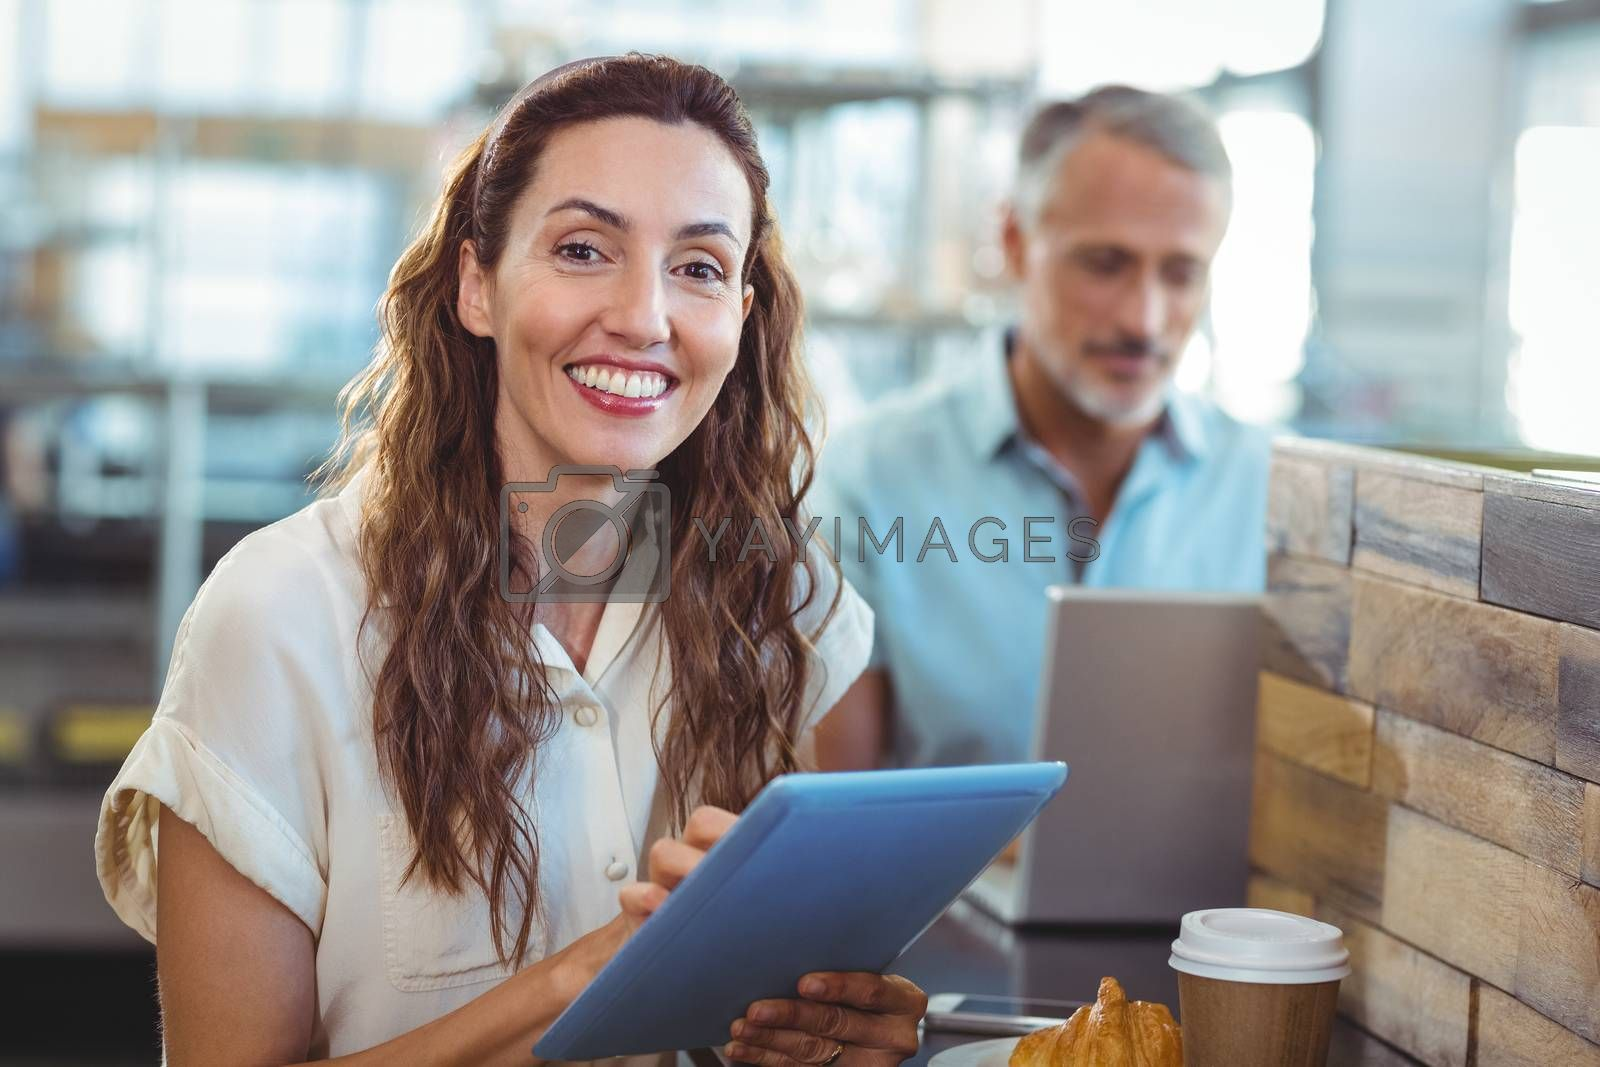 Royalty free image of Pretty brunette smiling at camera and using tablet by Wavebreakmedia